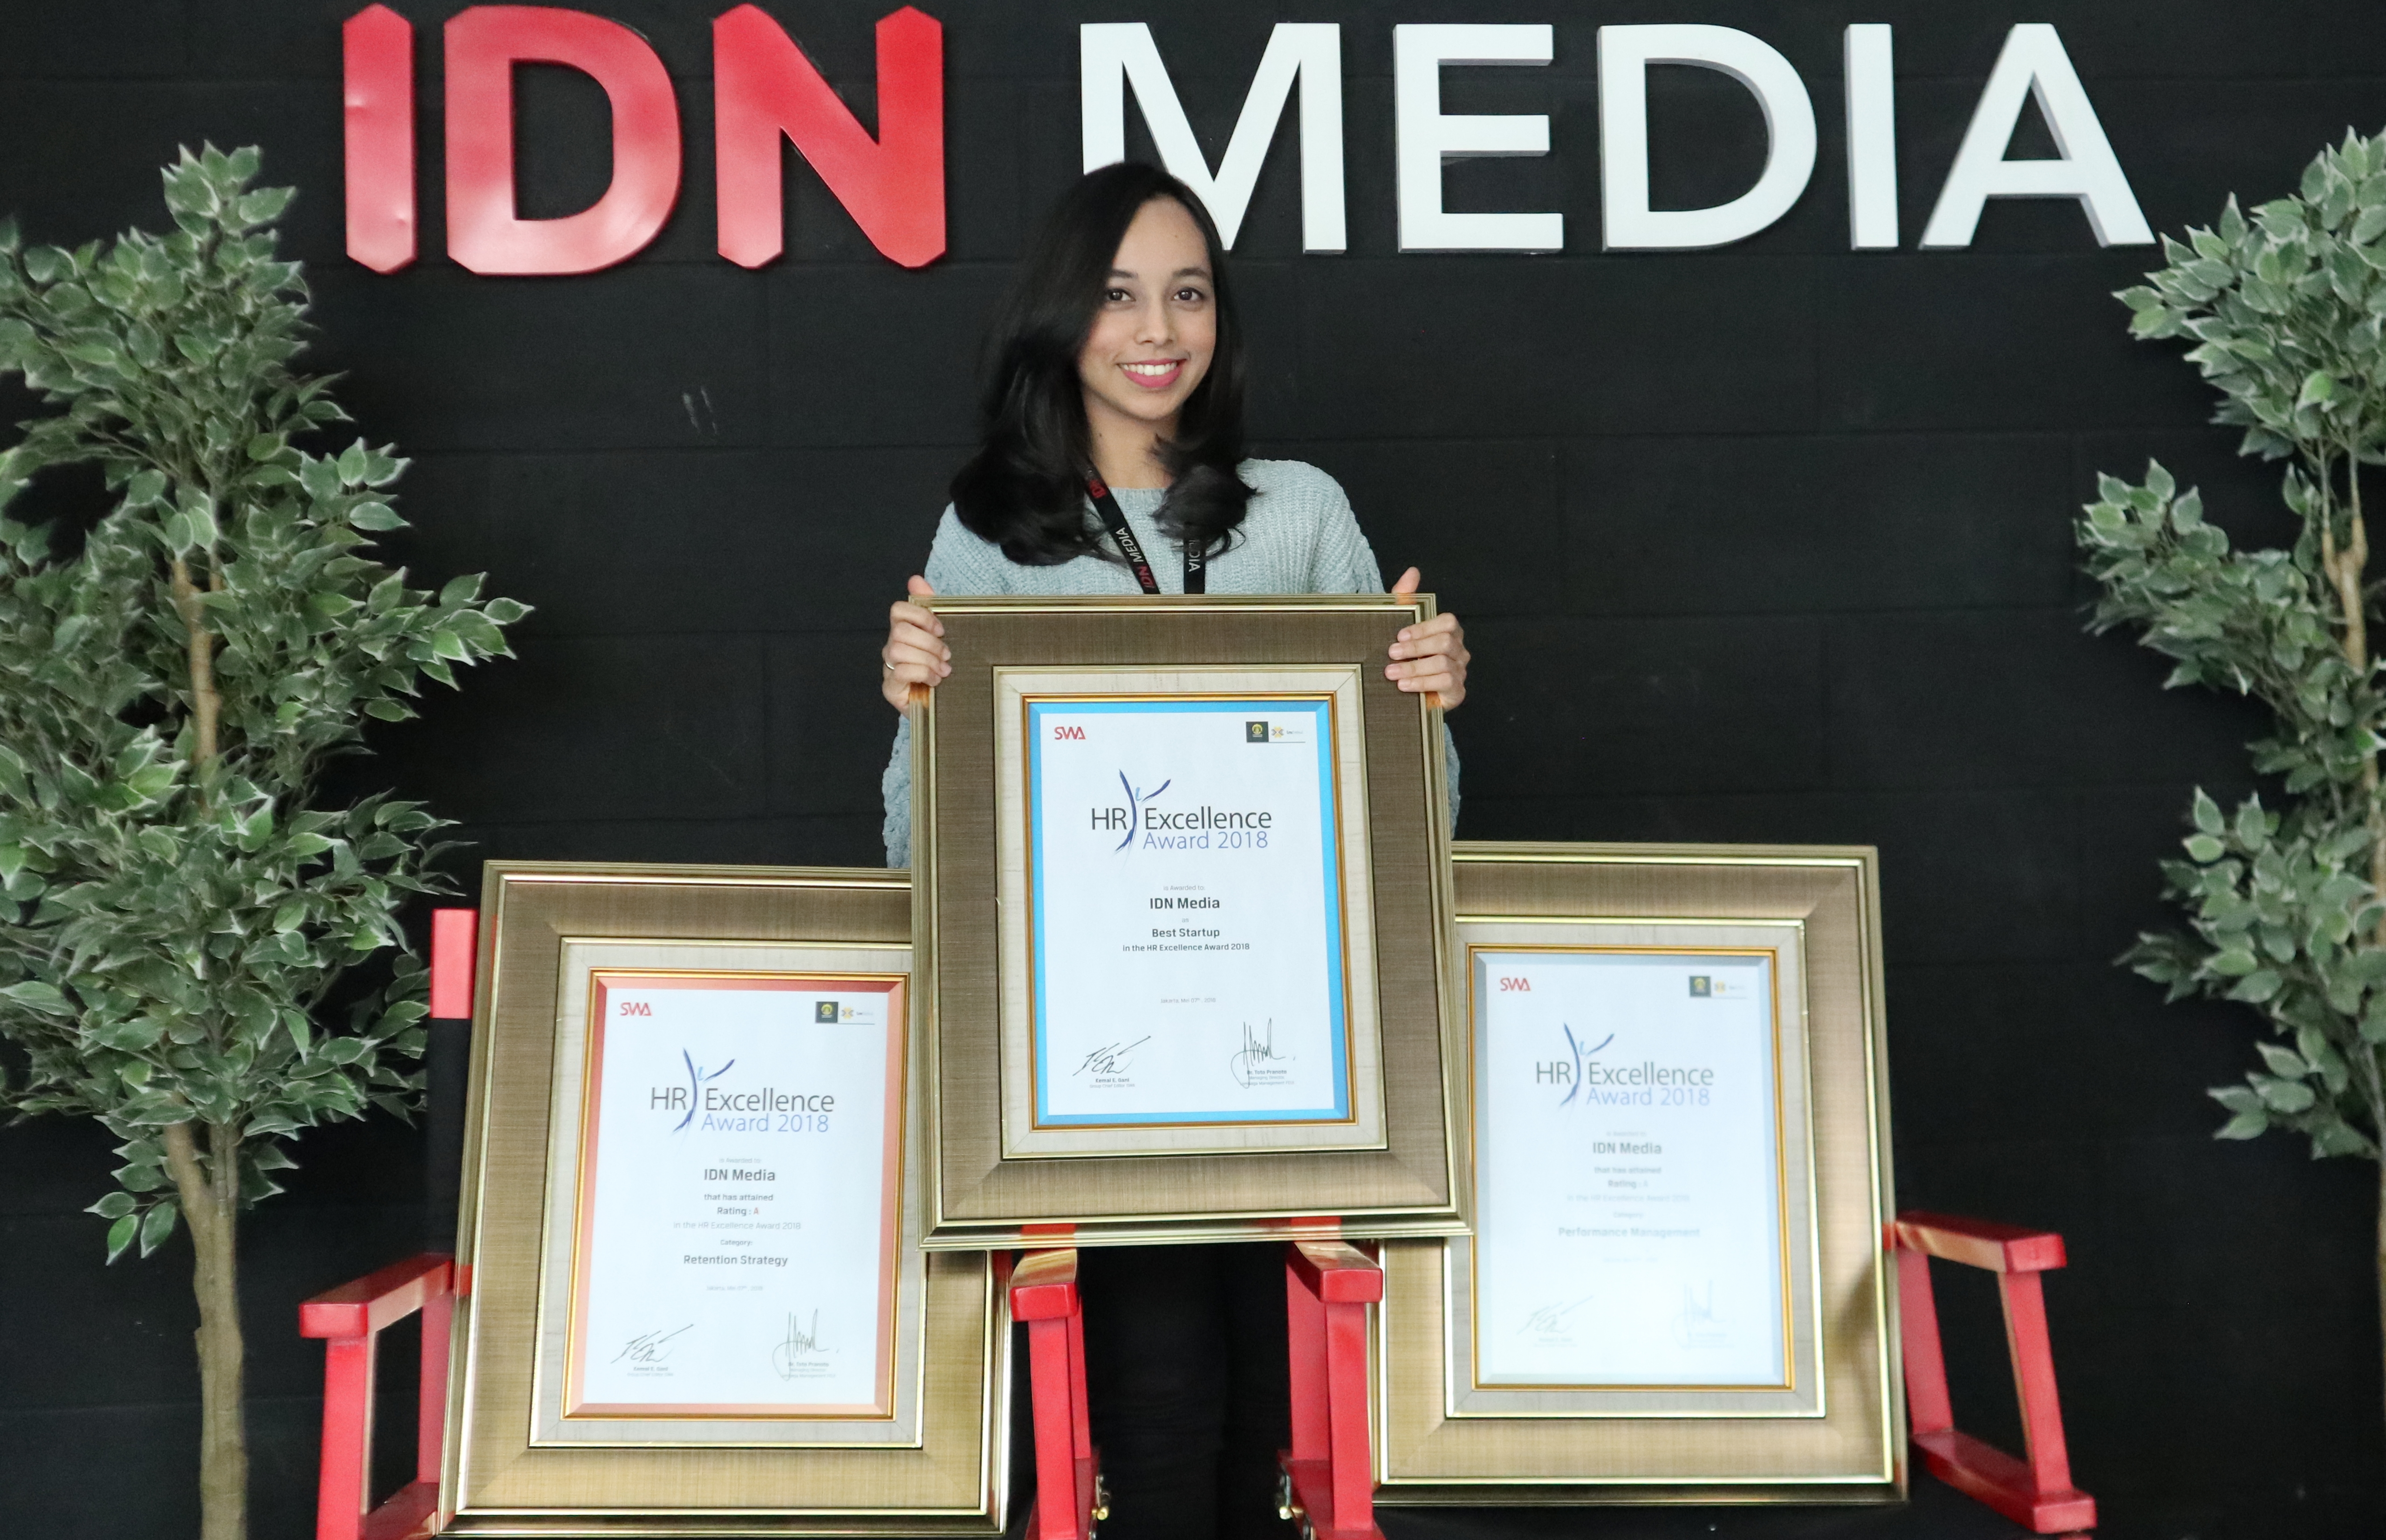 IDN Media Received Best Startup Award, Among 3 Other Awards, at HR Excellence Award 2018